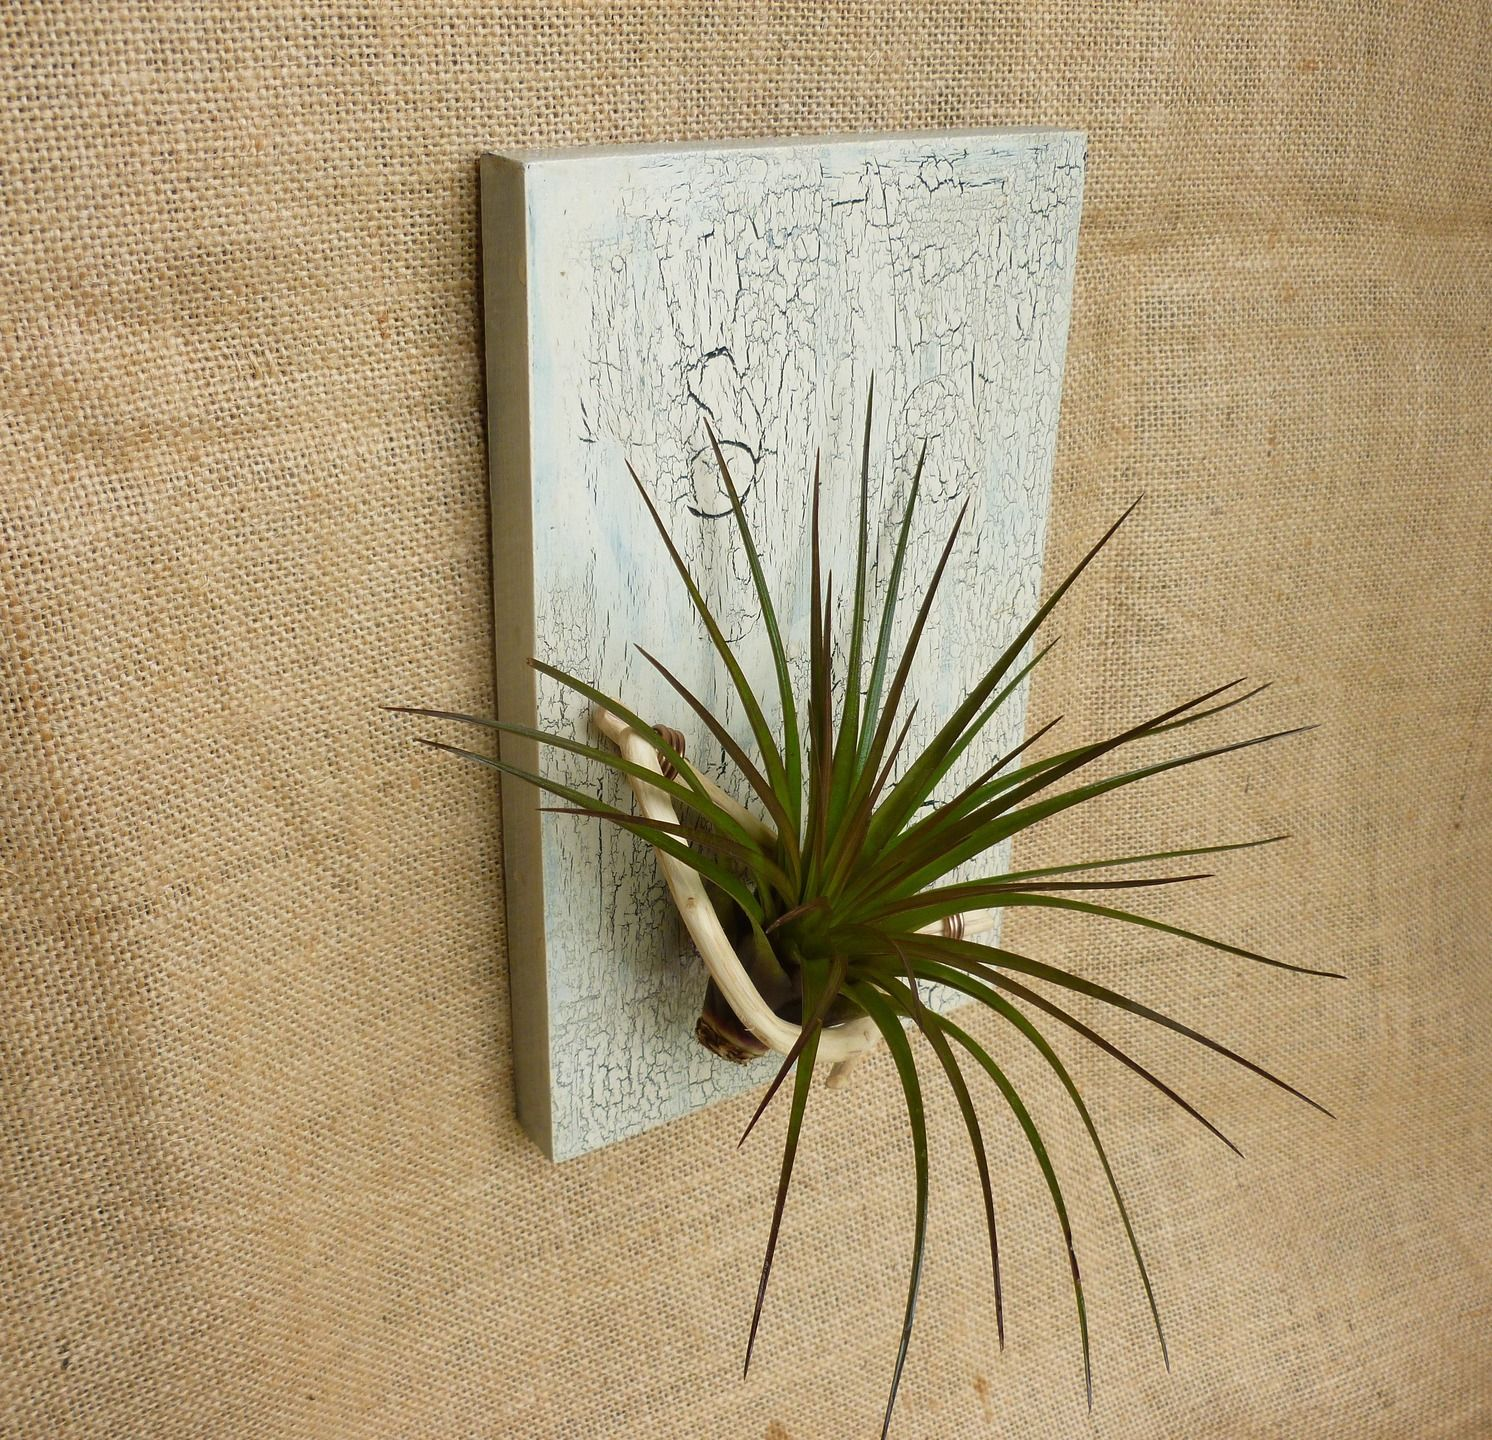 Les Tillandsias Filles De L Air tillandsia air plant holder. tillandsia plante aérienne